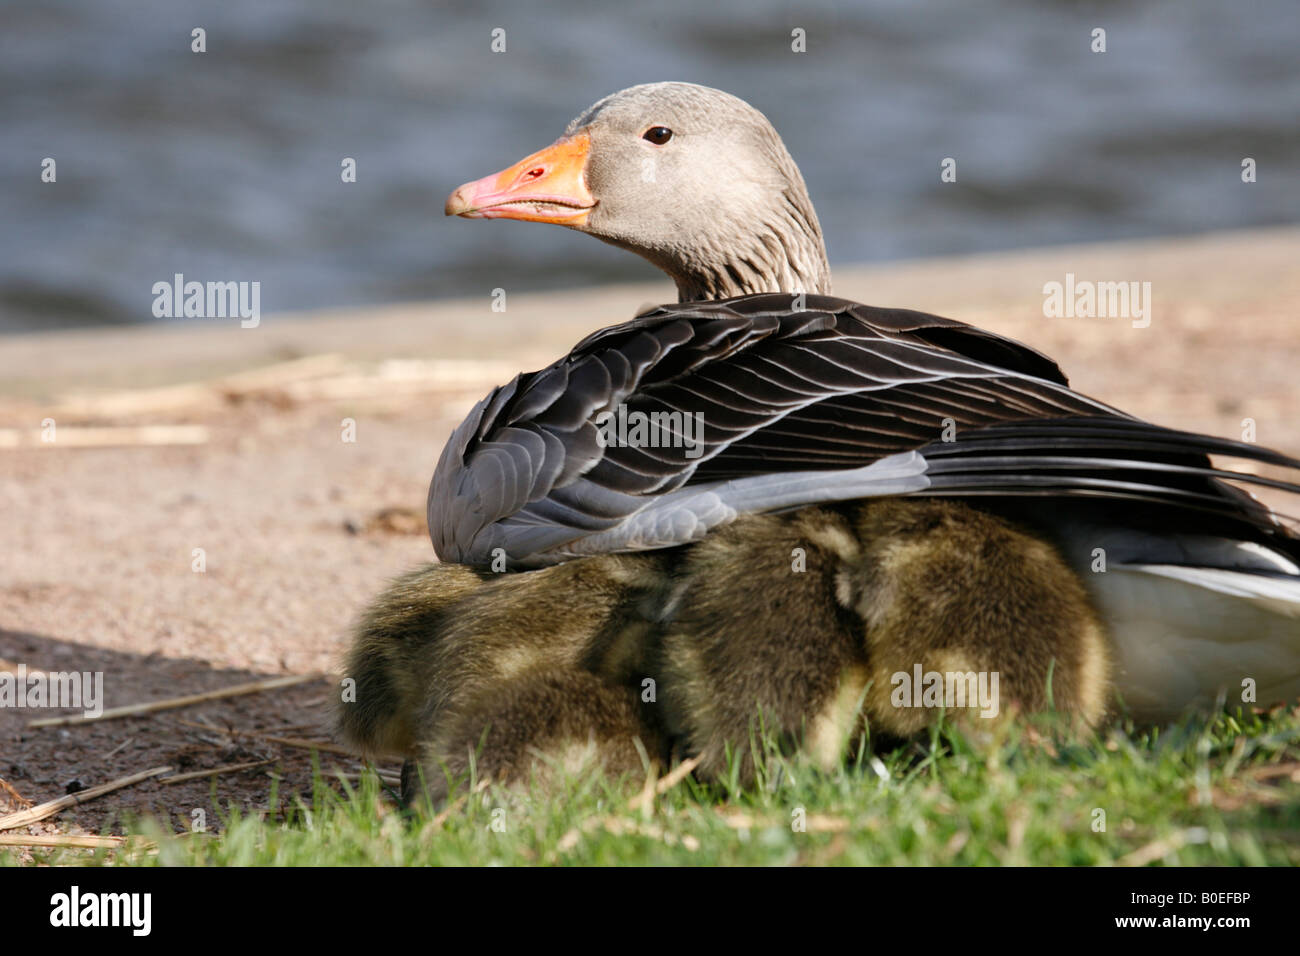 Greylag Goose anser with chicks sheltering under wing - Stock Image